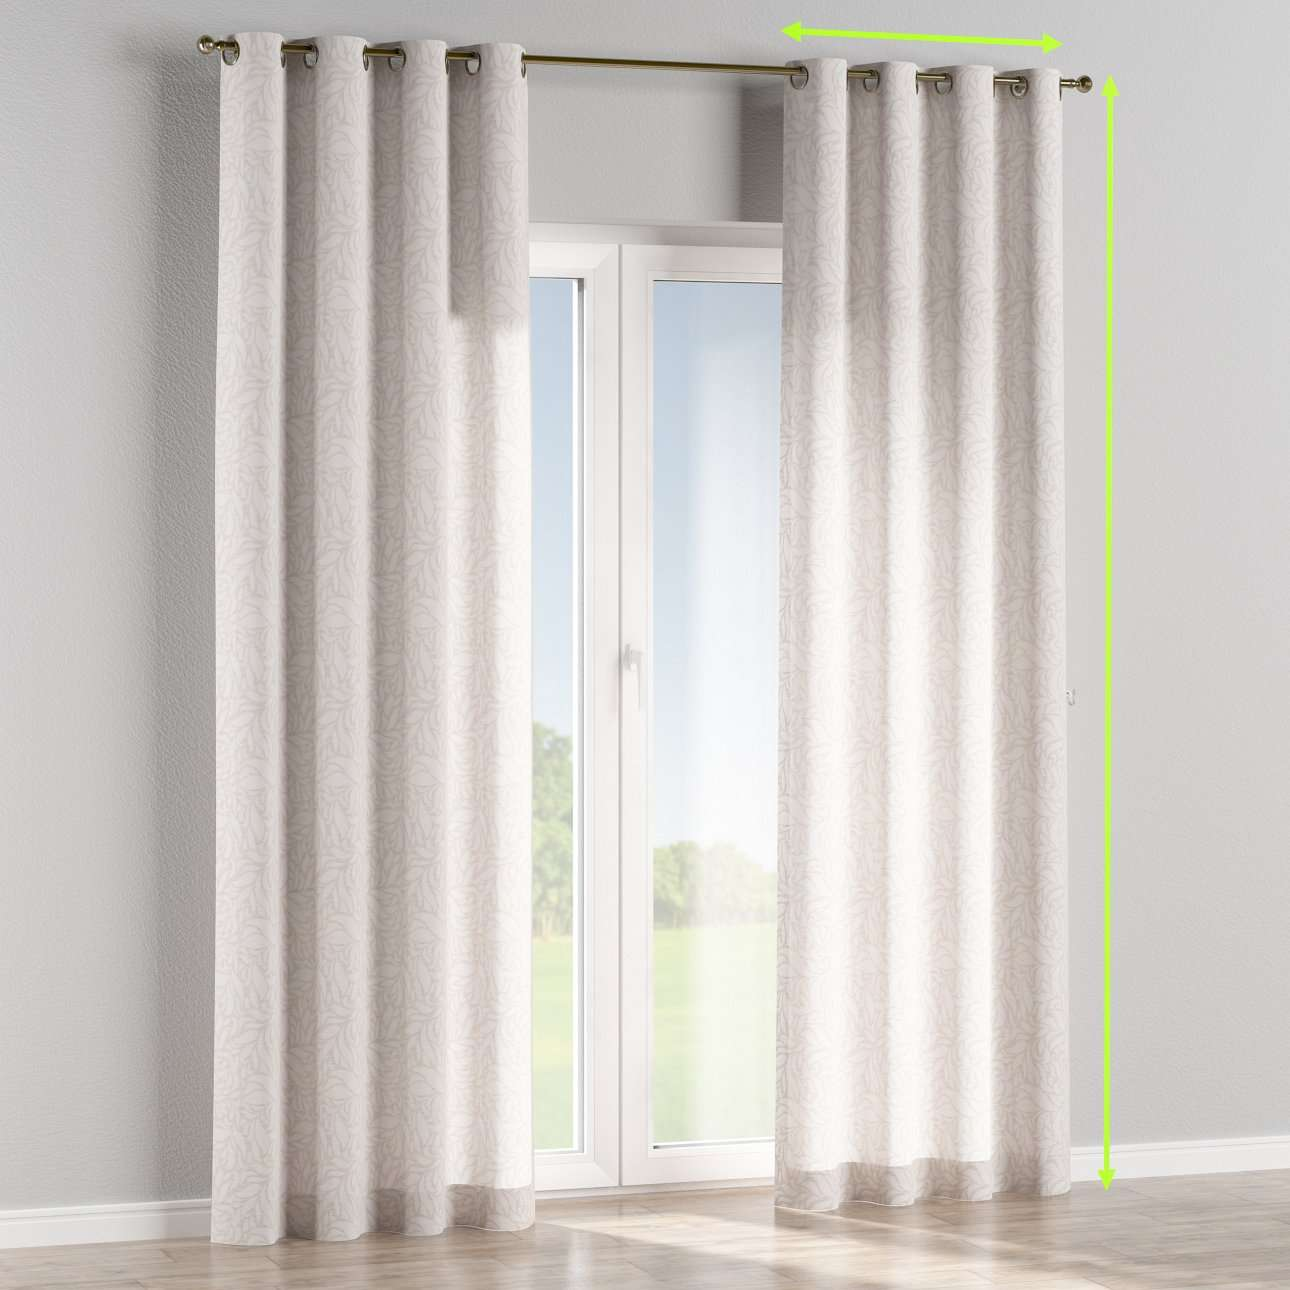 Eyelet curtains in collection Venice, fabric: 140-50